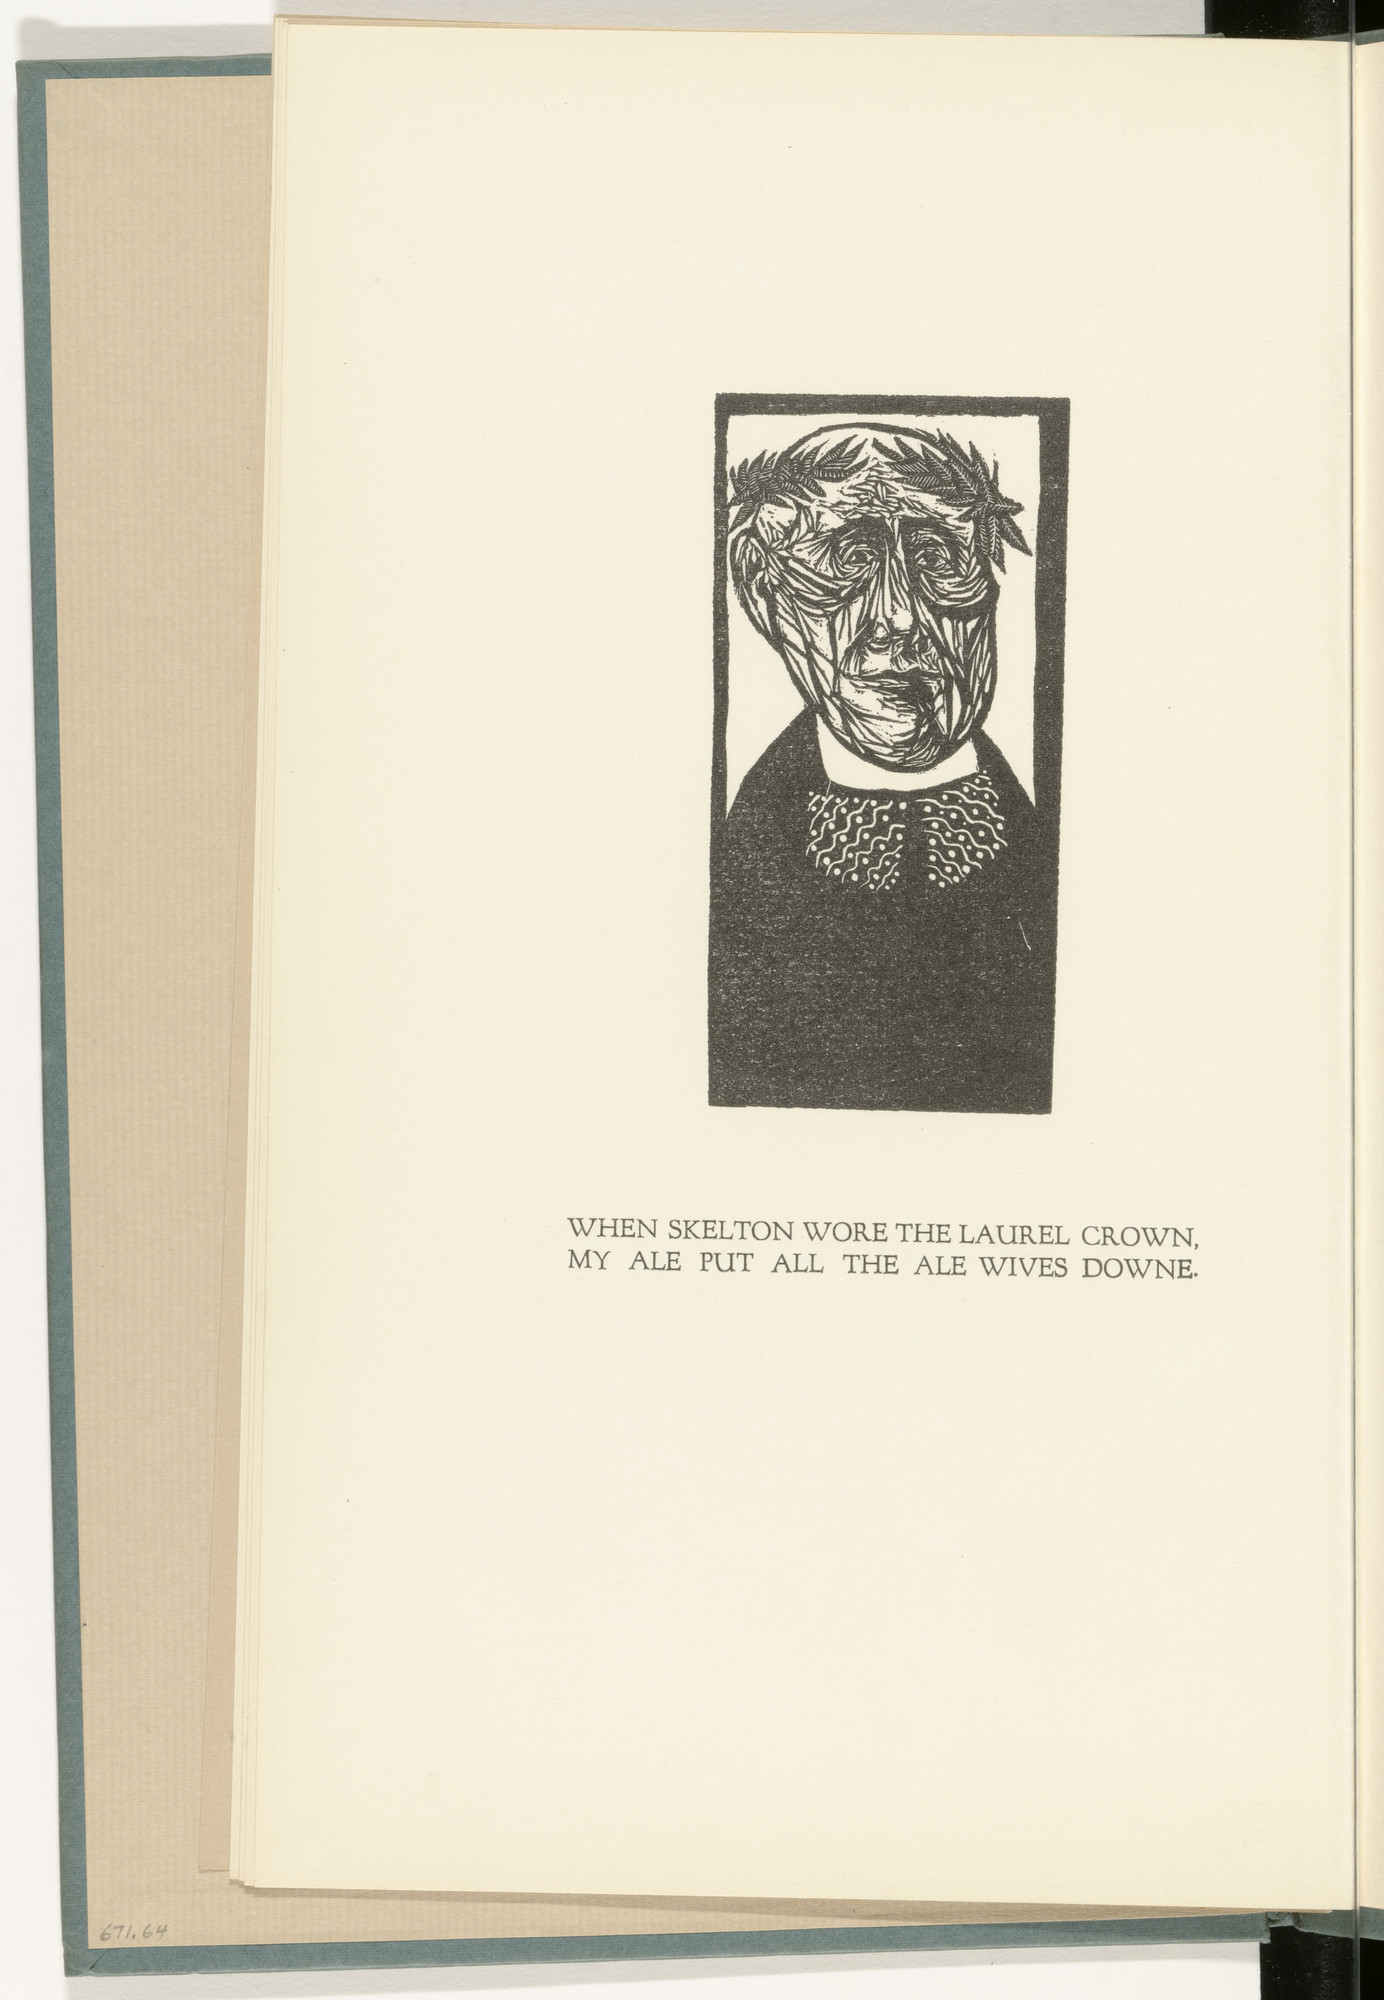 Leonard Baskin. Imaginary Portrait of John Skeleton (frontispiece) from The Tunning of Elynour Rummynge. 1953